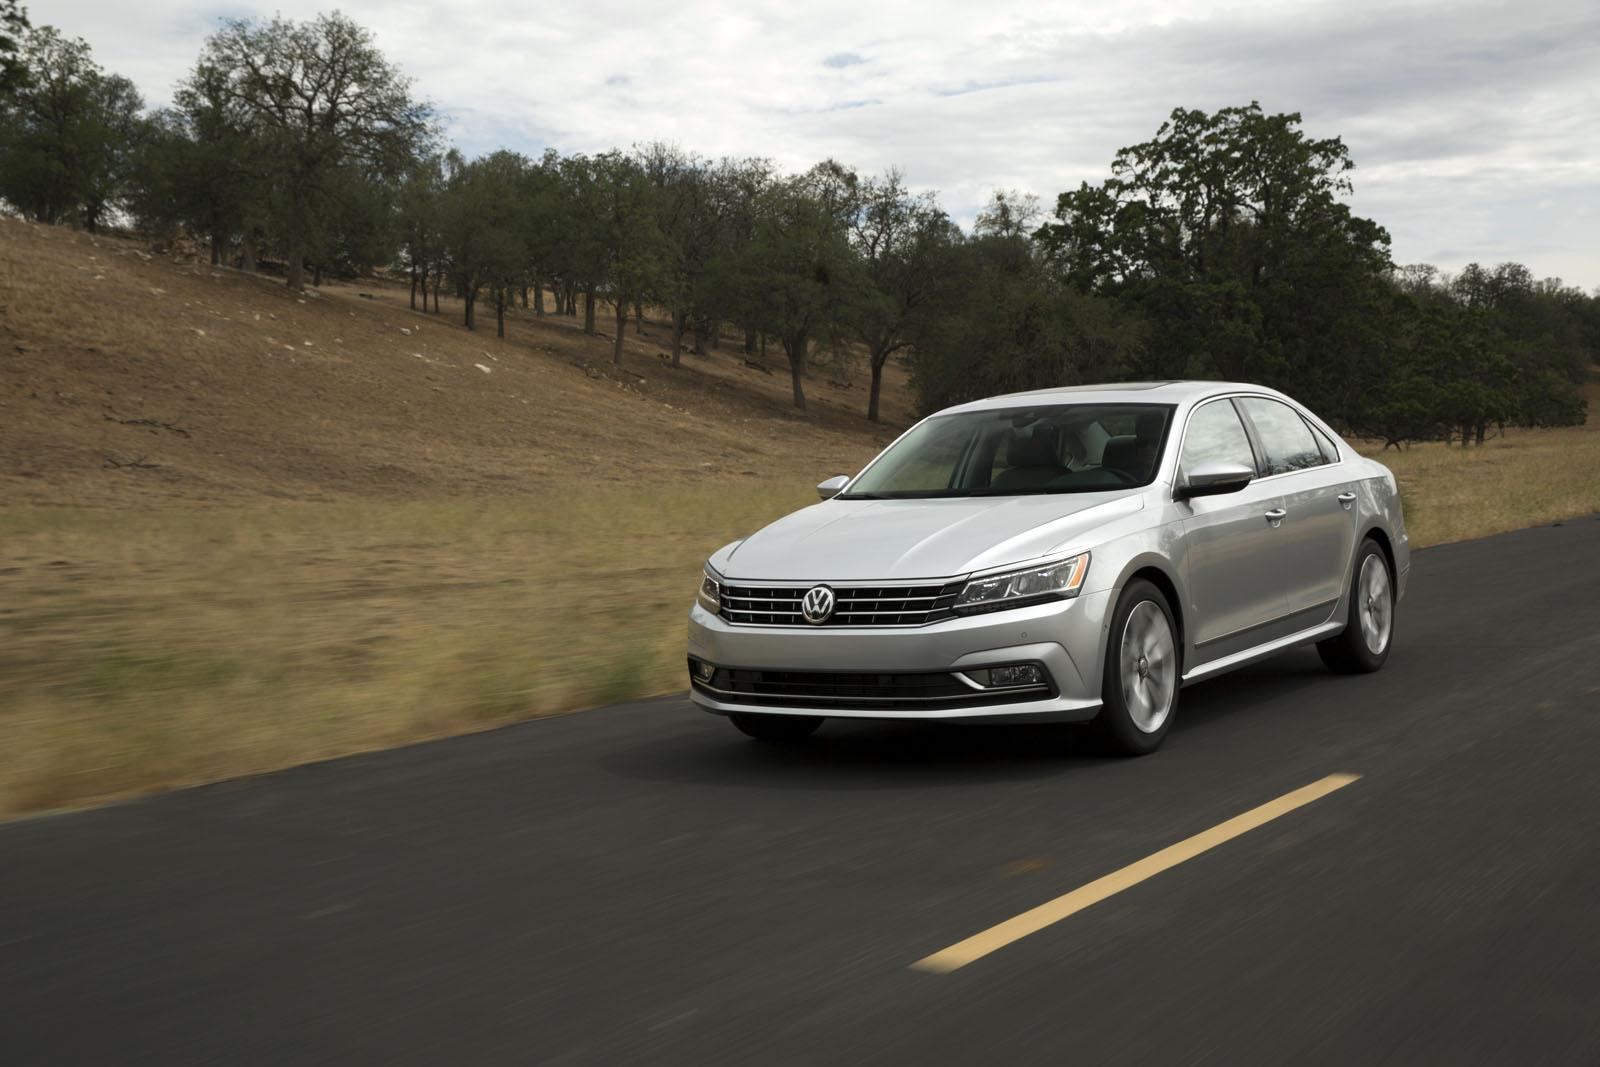 Volkswagen Passat photo 152541